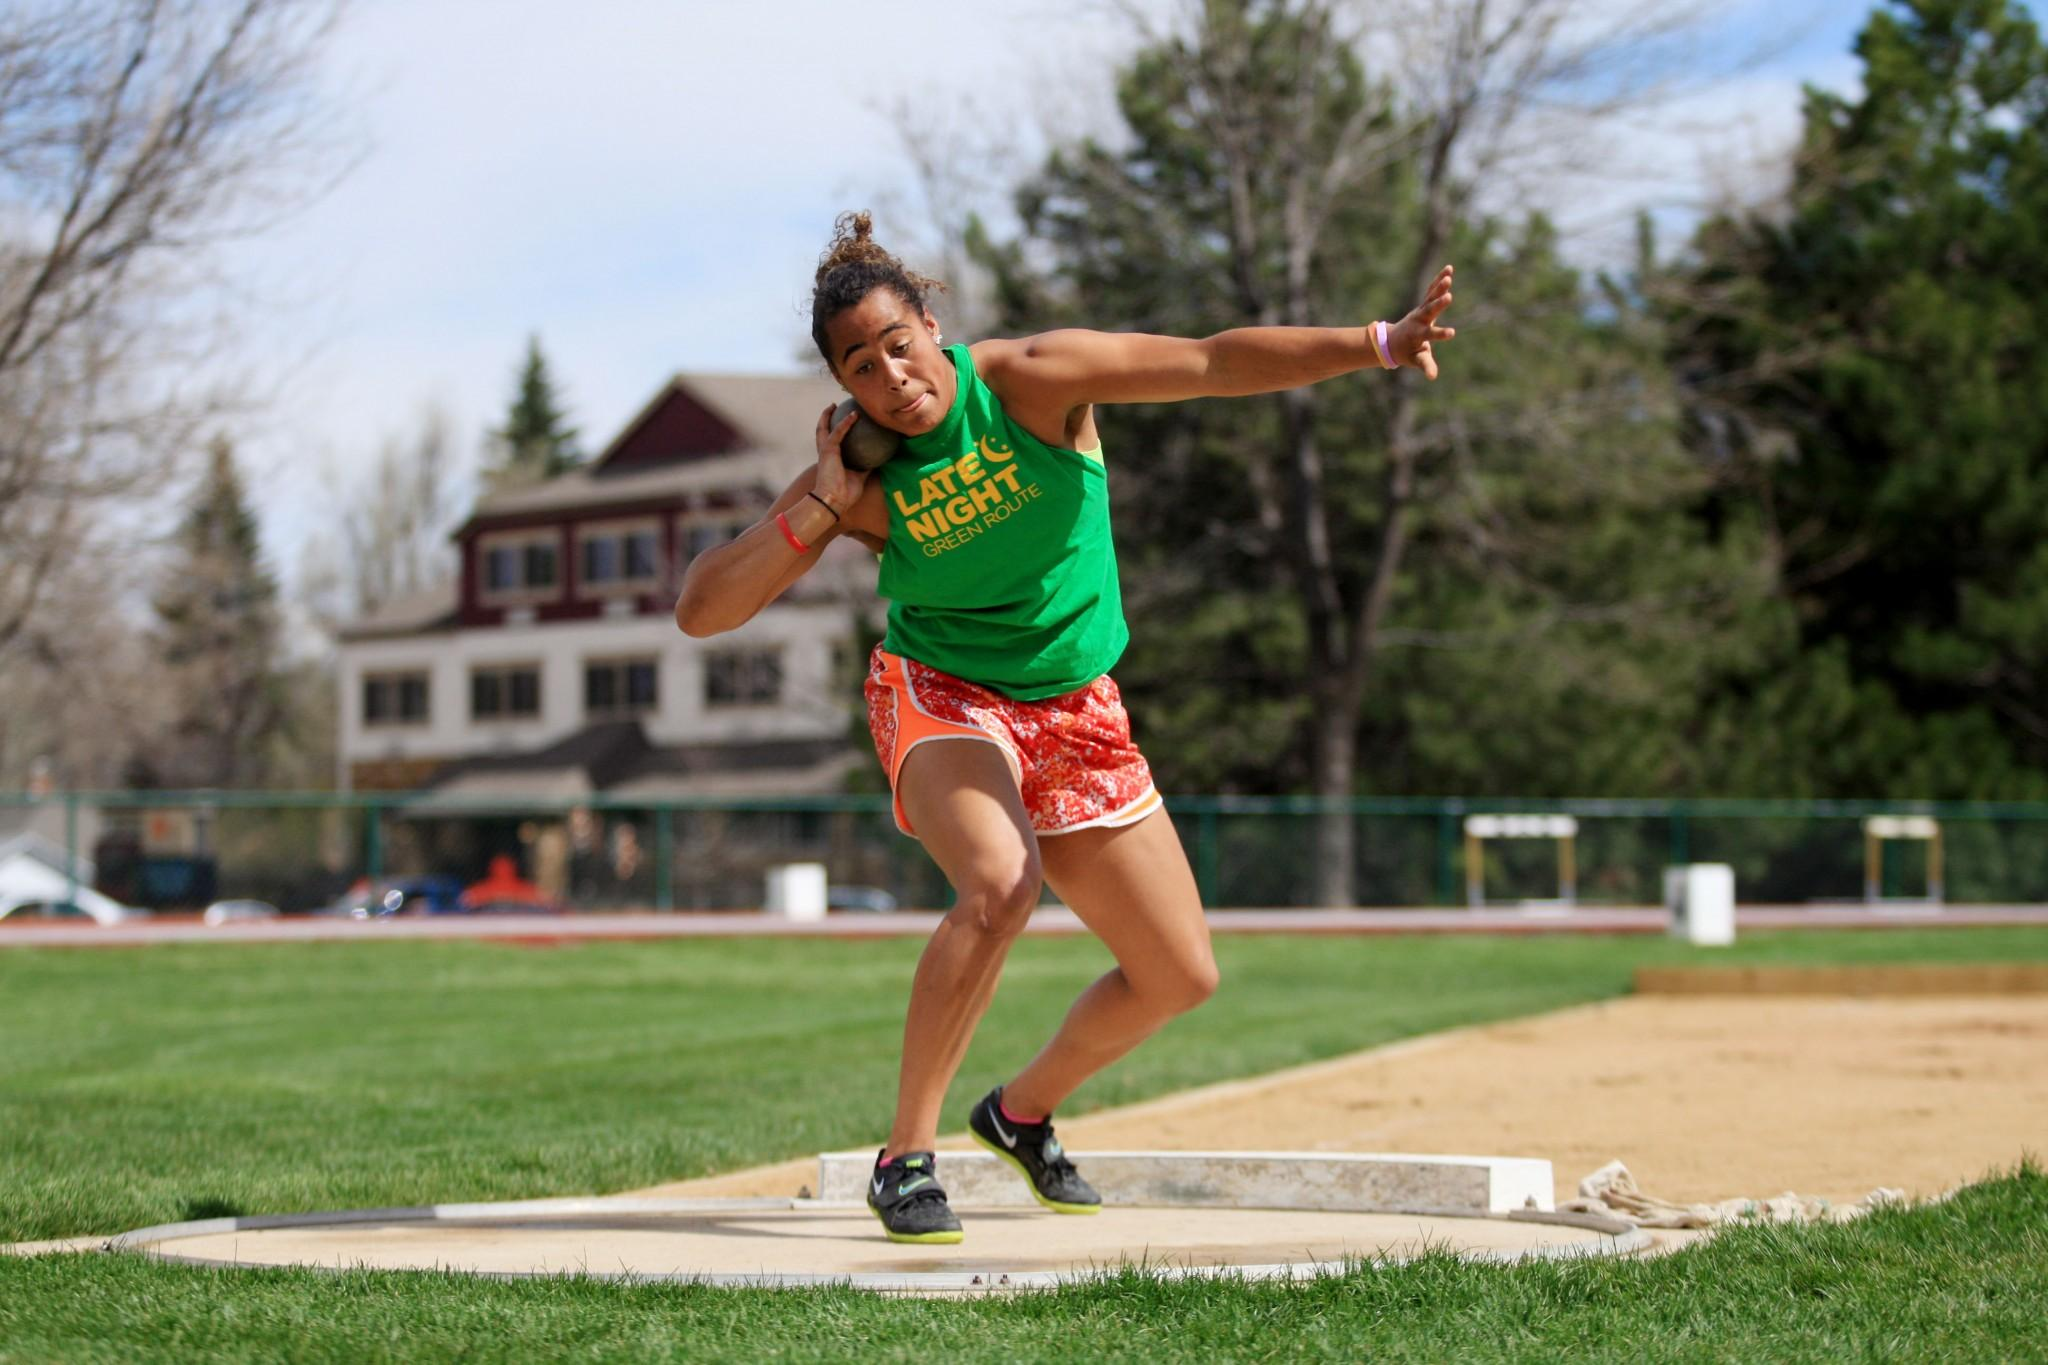 An athlete with a lot of shinning potential, Kiah Hicks exercises her throwing arm Tuesday afternoon in preperation for the Las Vegas meet this coming Saturday.